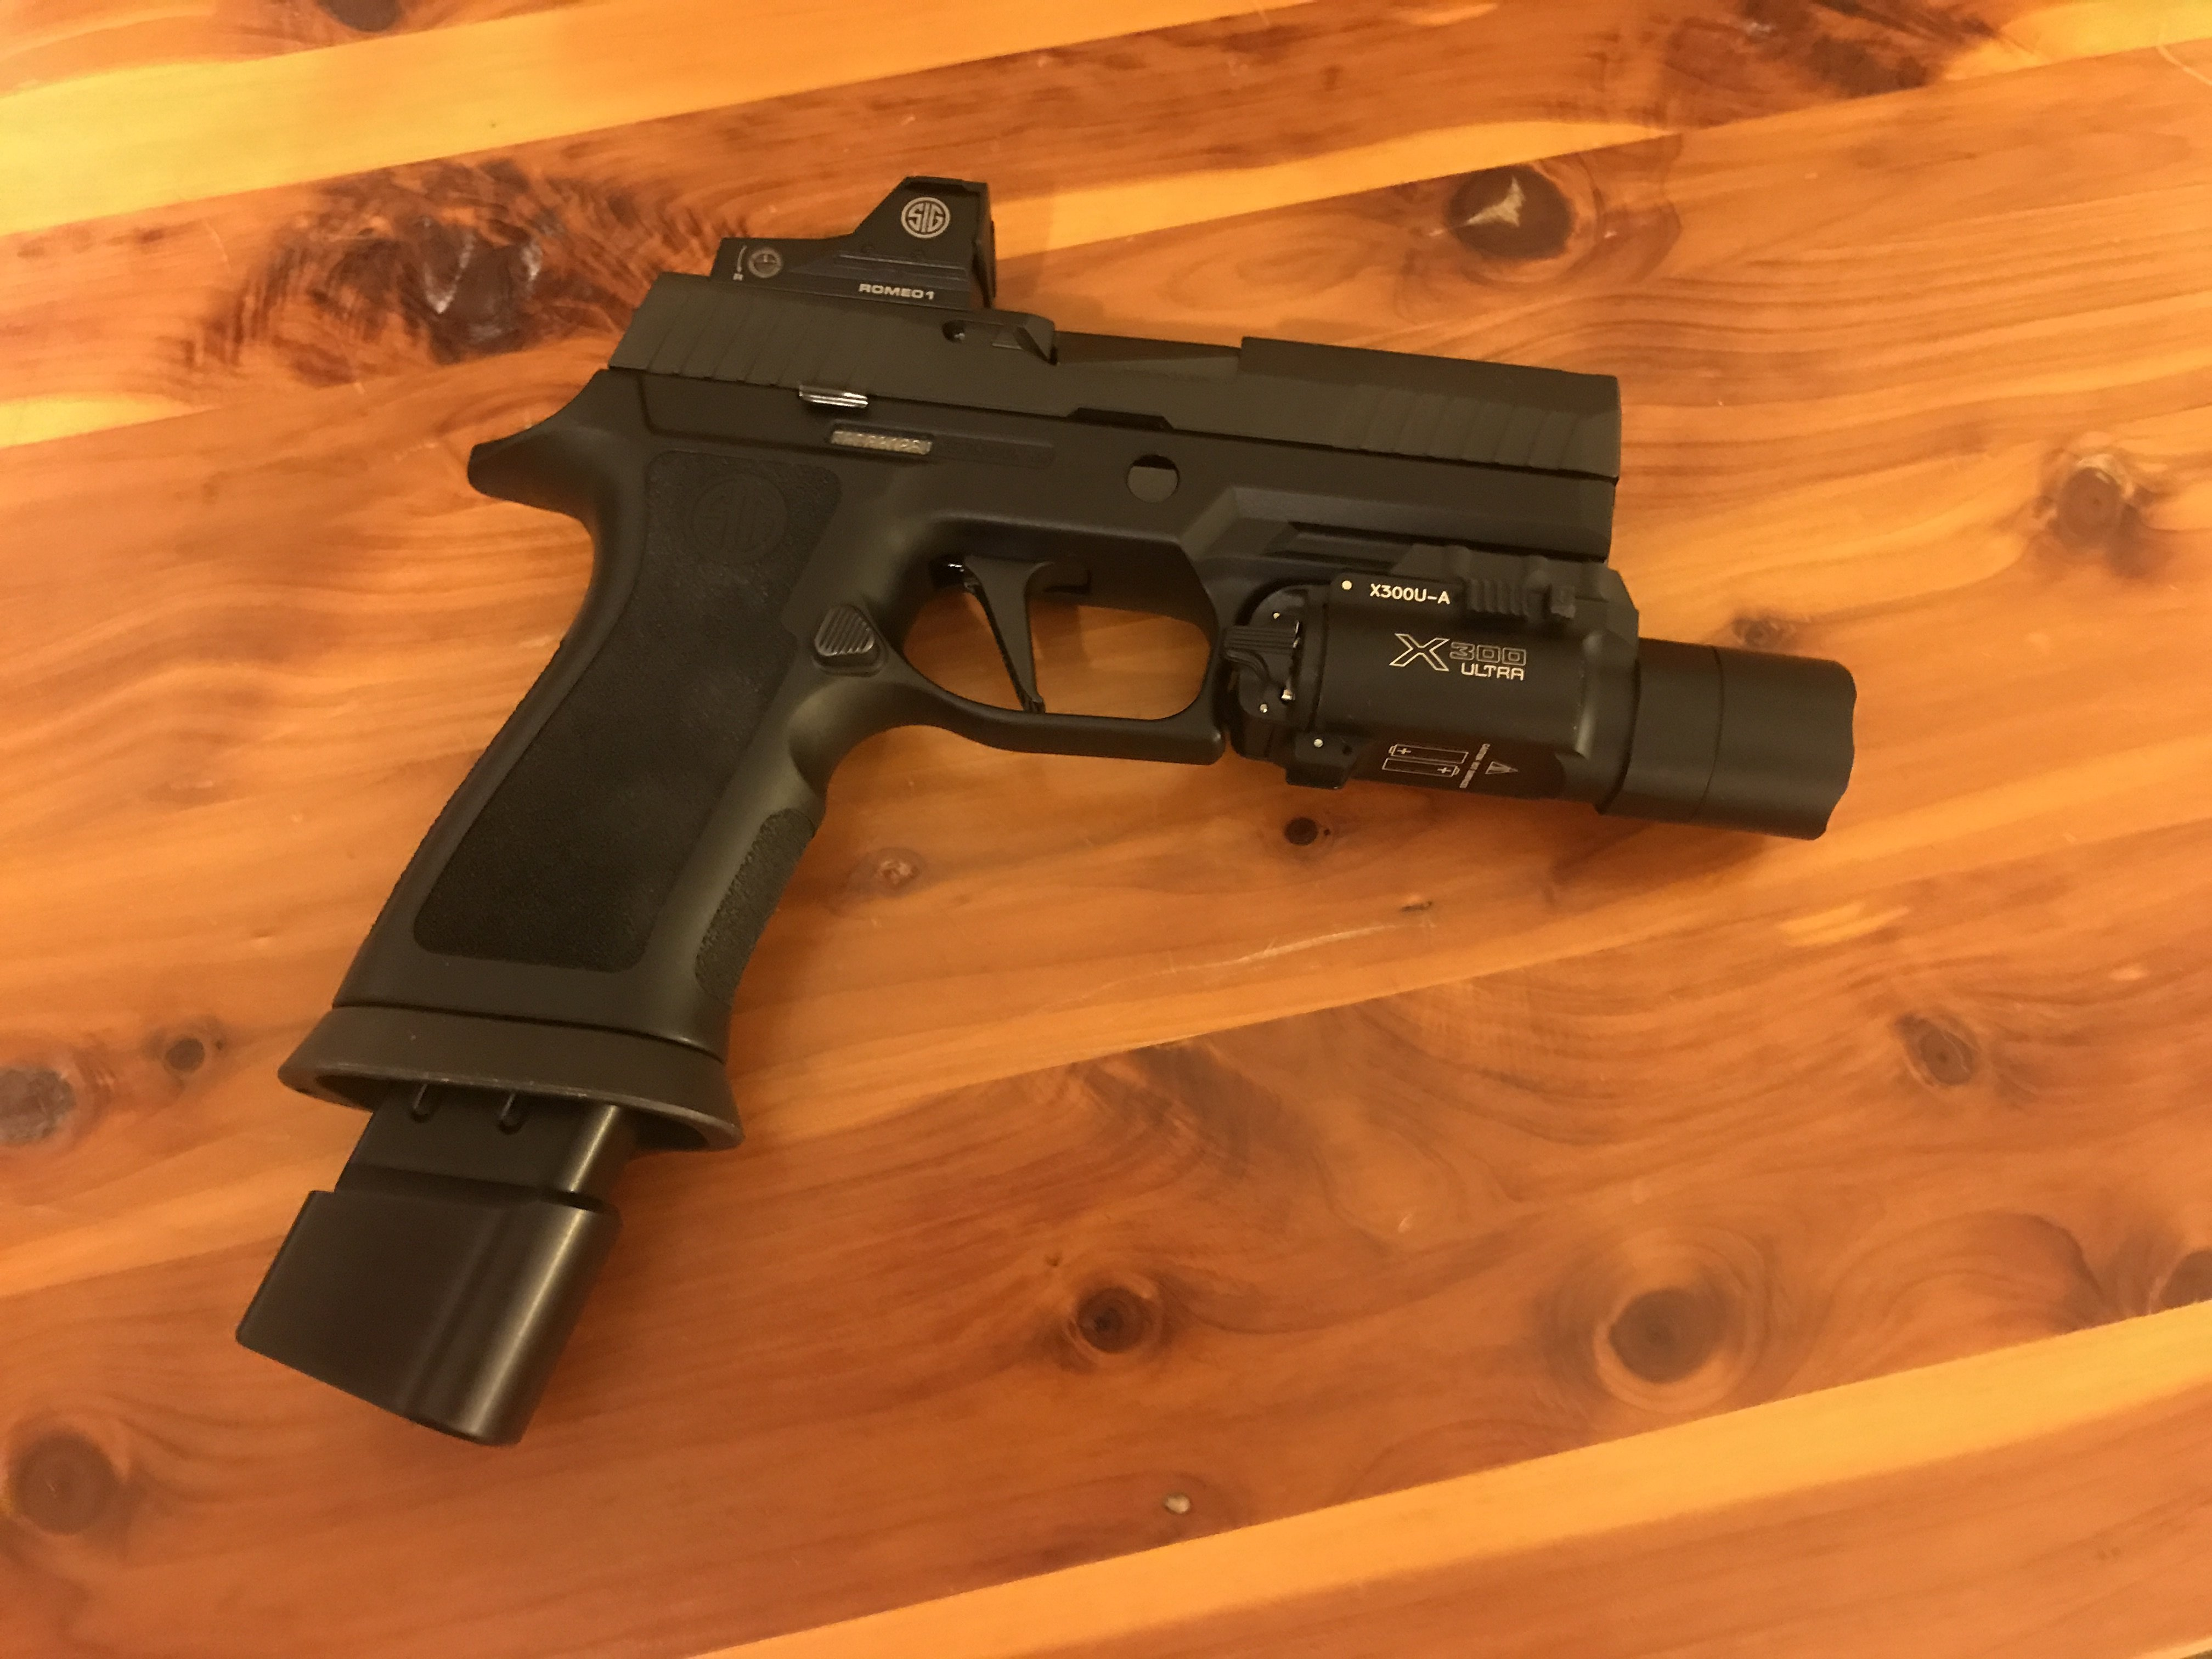 P320 Compact low-profile magwell for concealed carry? - AR15 COM